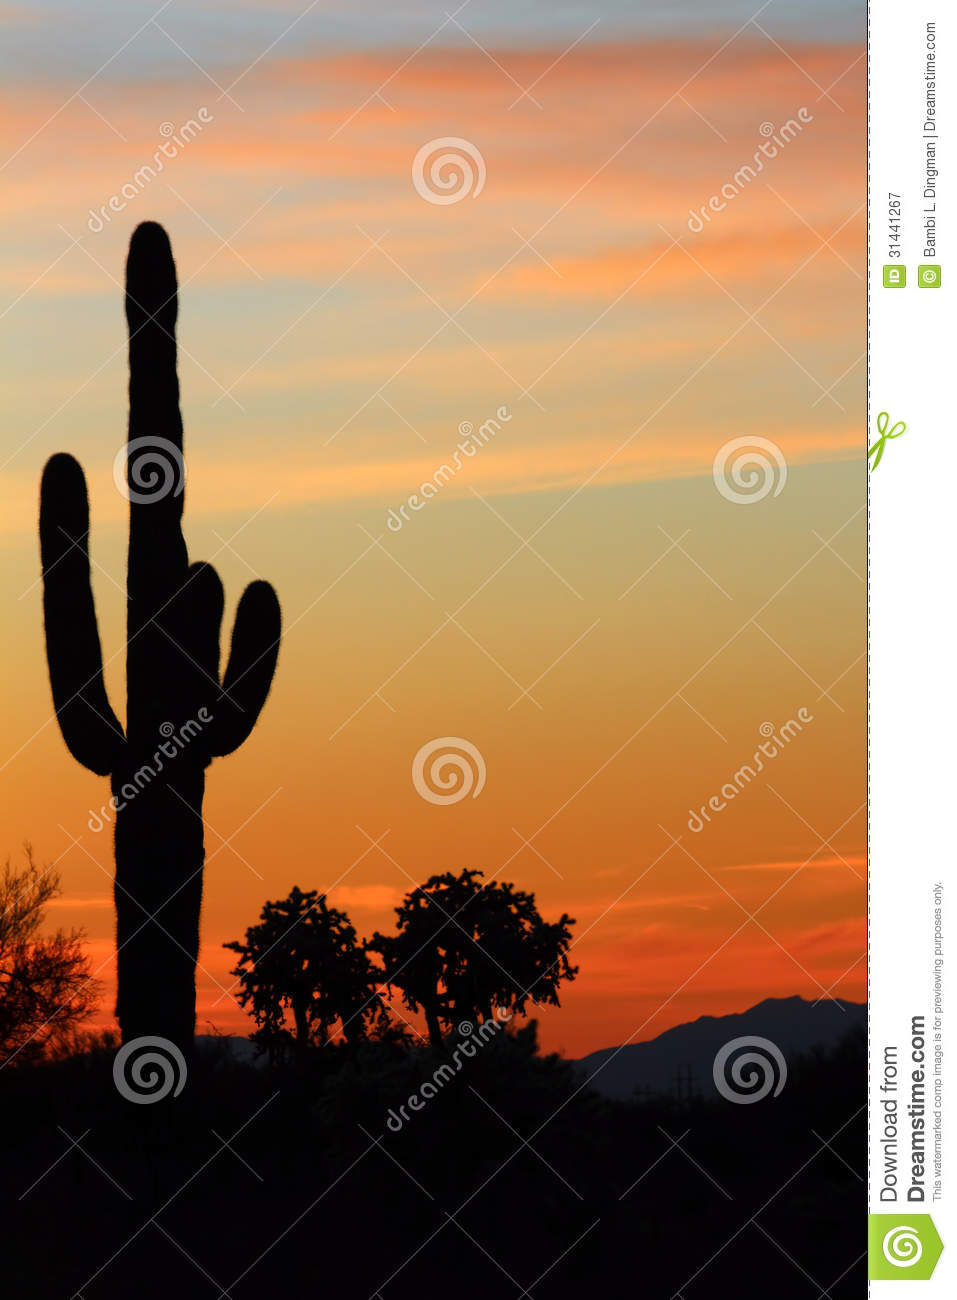 cactus silhouette stock image  image of nature  dusk